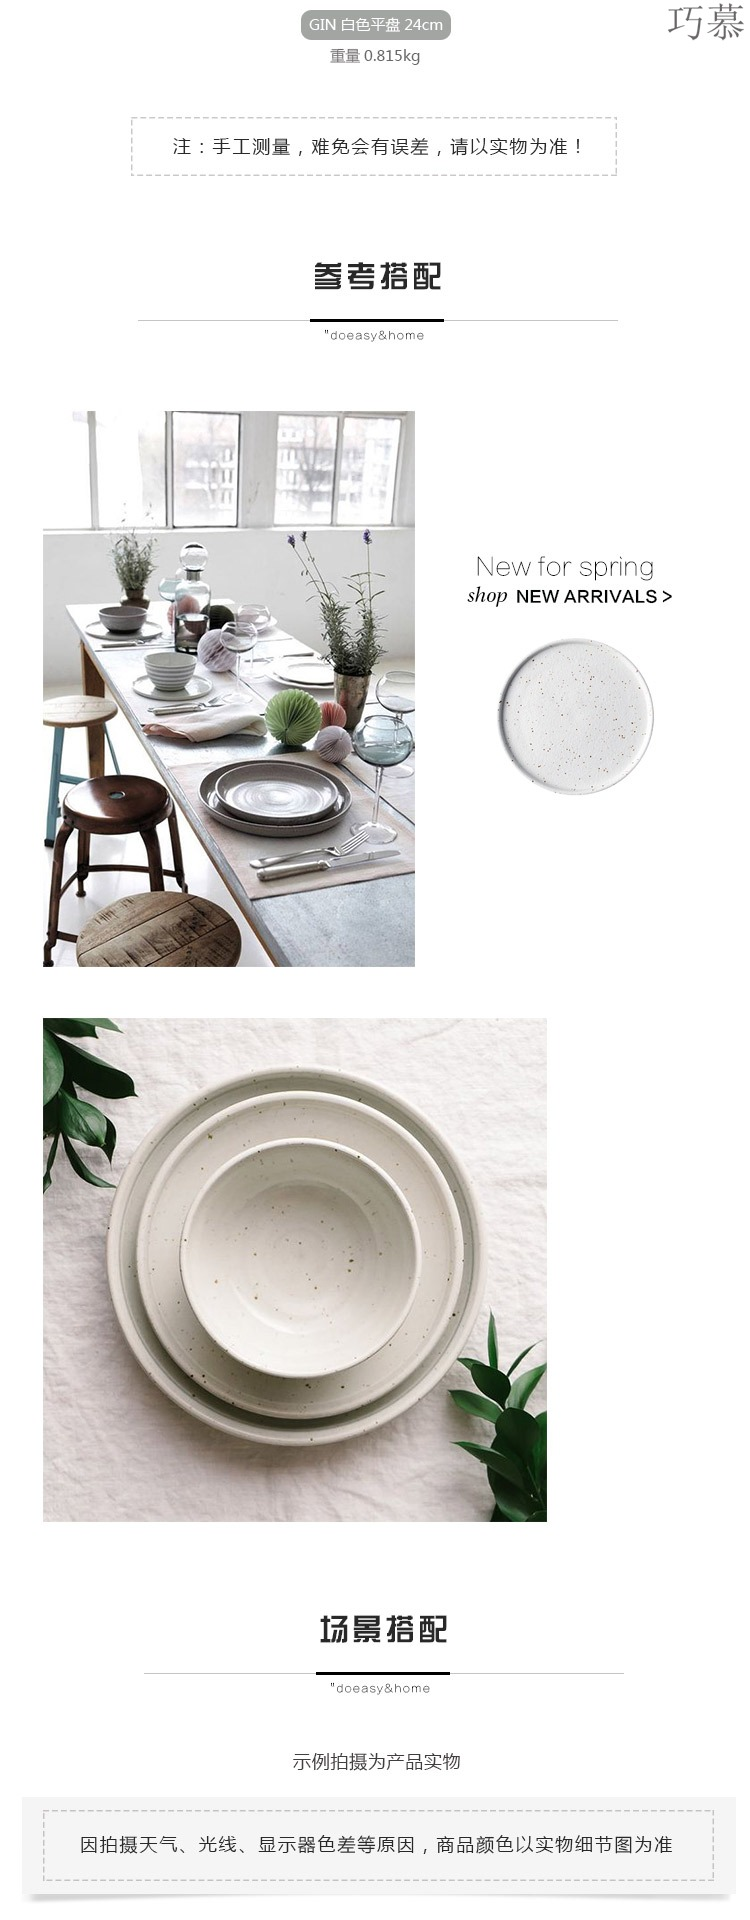 Longed for DY grinding ceramics steak restoring ancient ways opportunely disc white flat shallow plate breakfast of disc western - style food plate all round